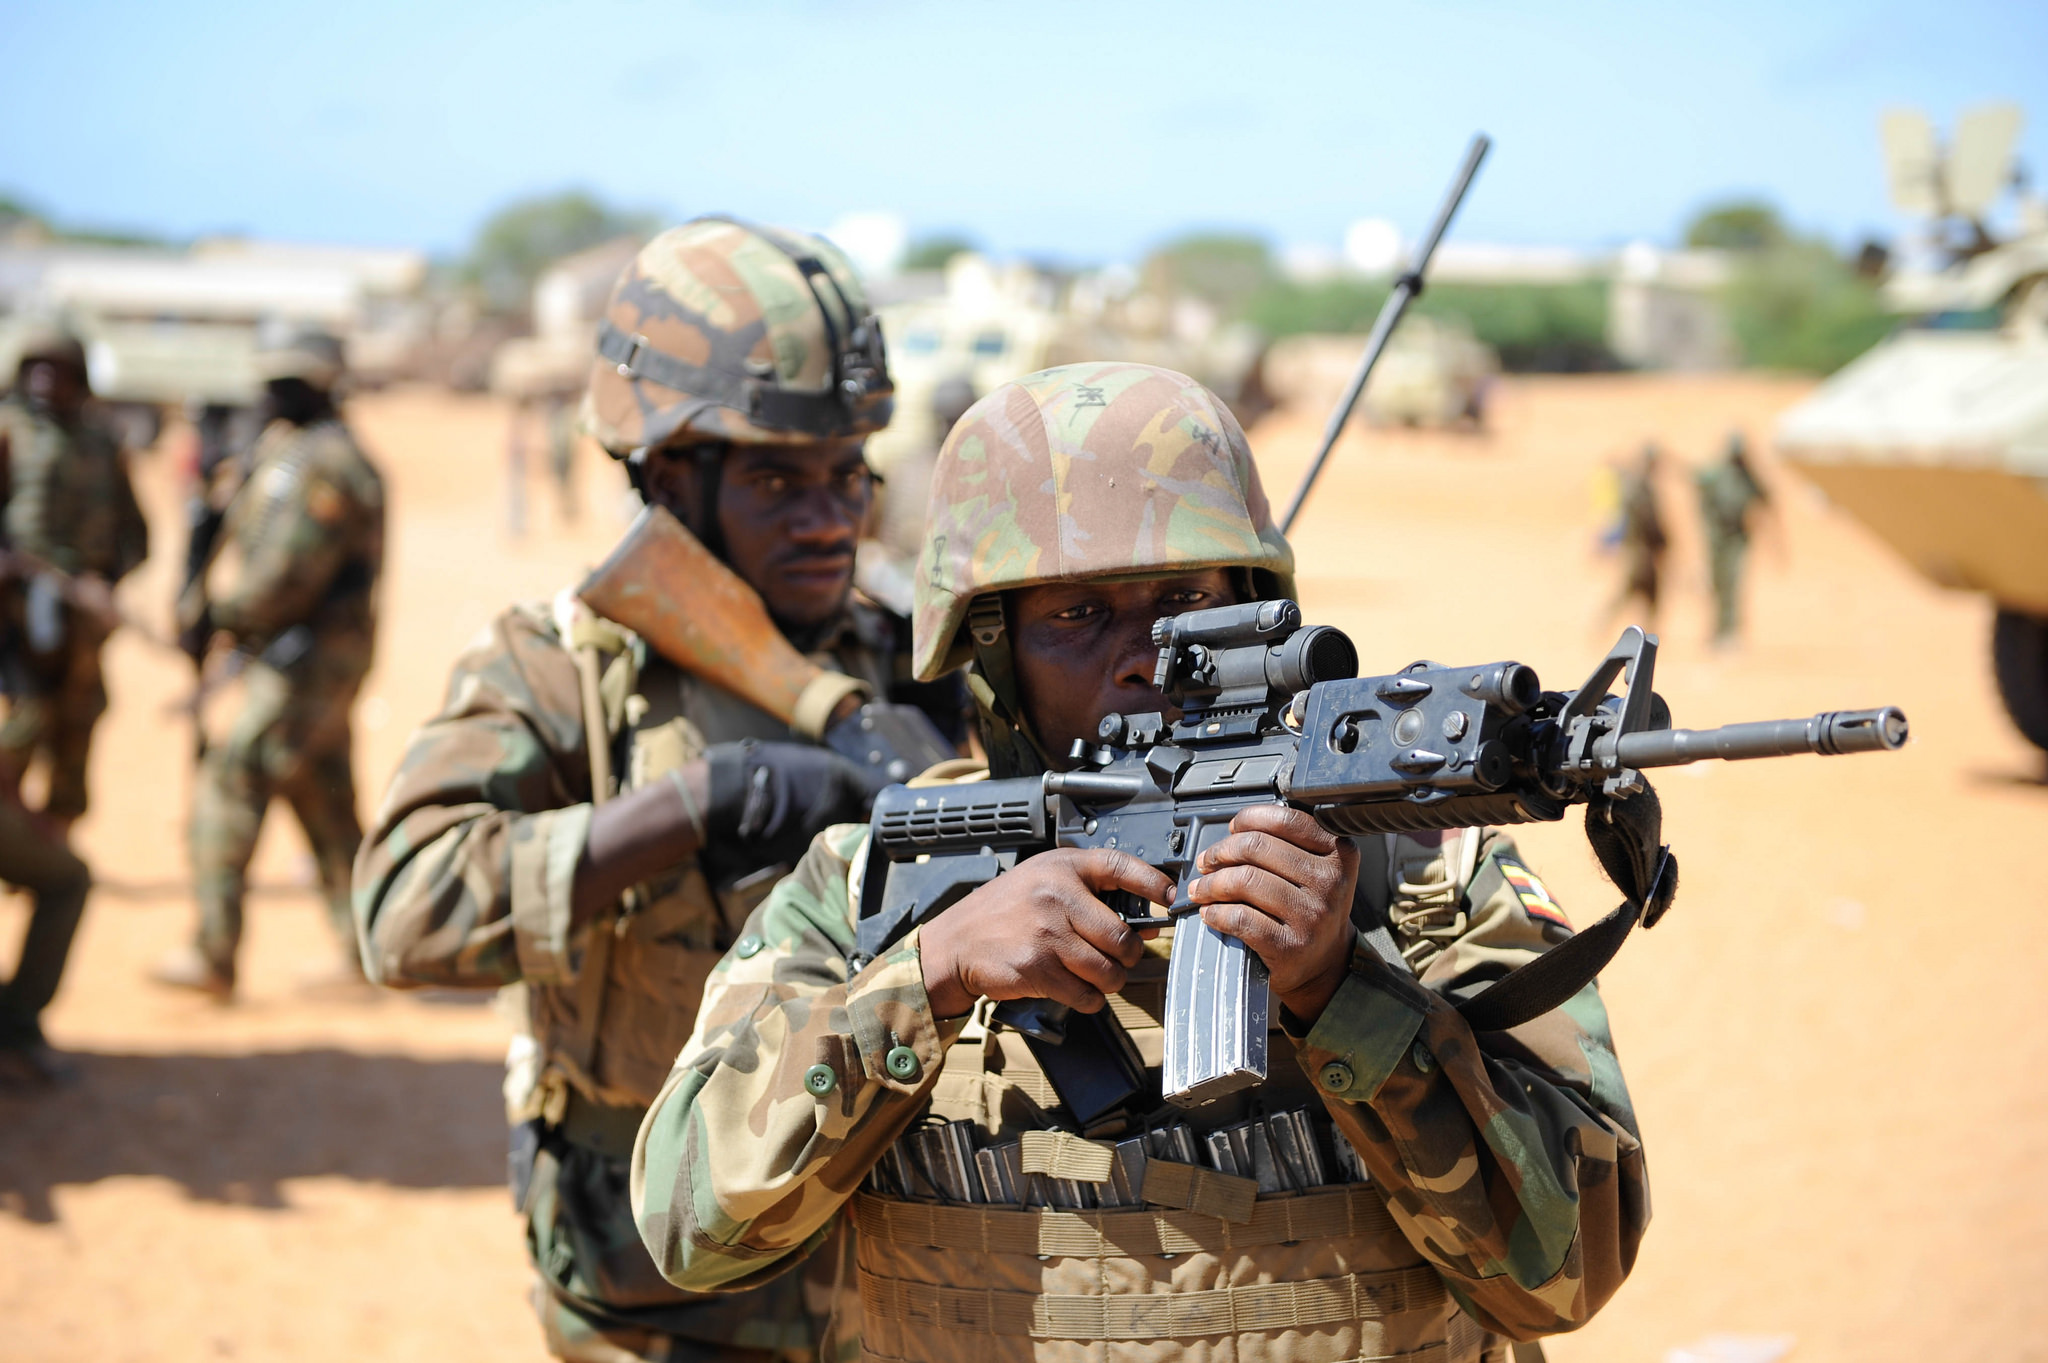 Radical Islam in the Sahel and Horn of Africa